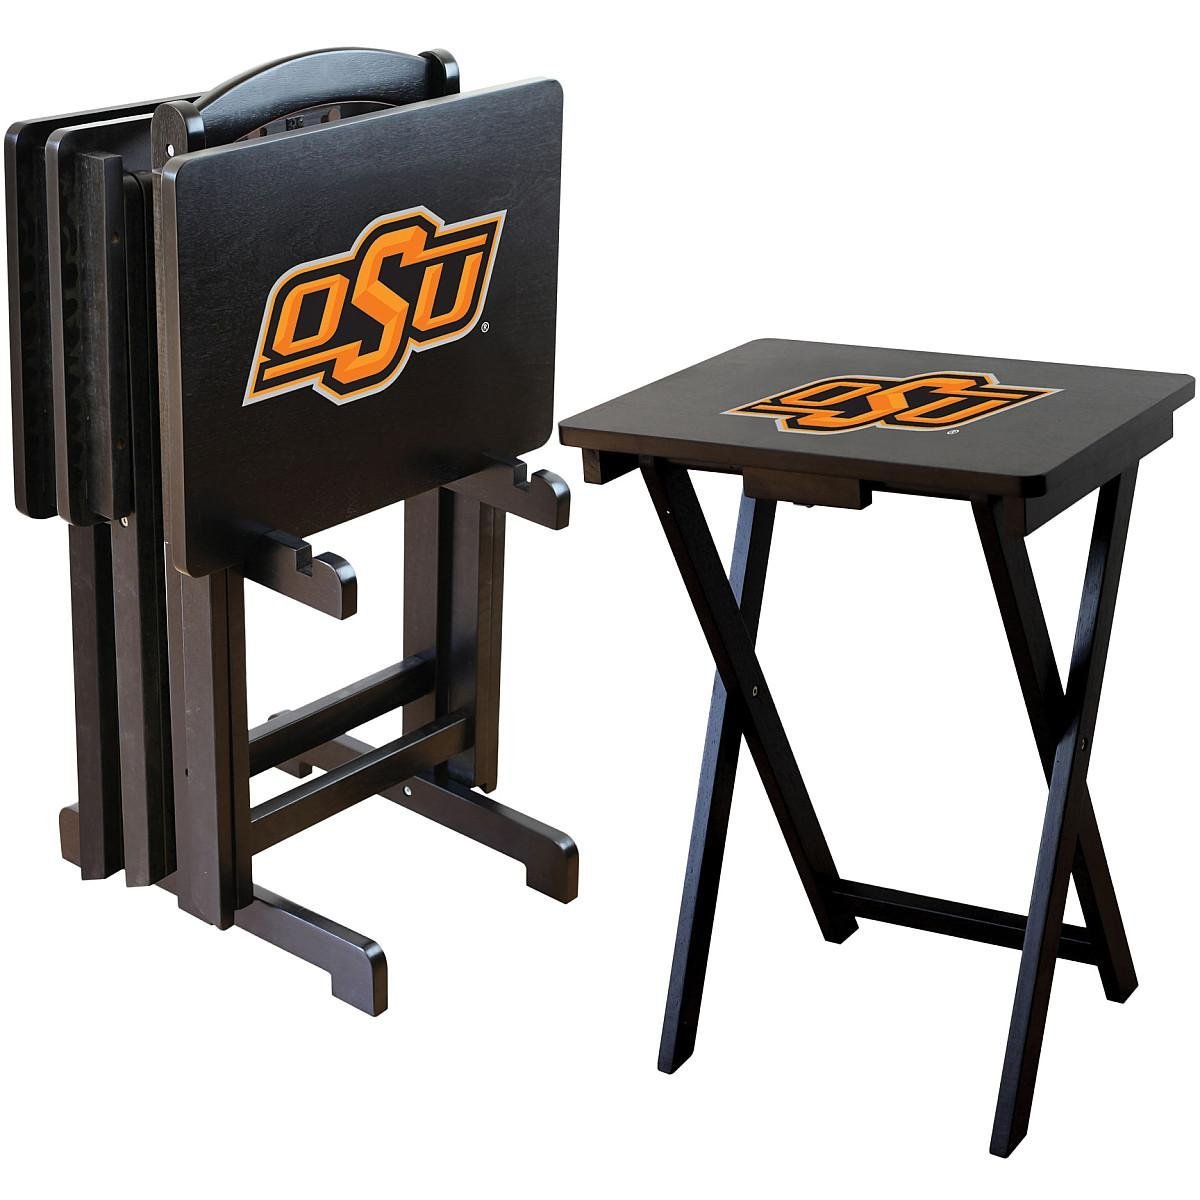 Imperial Officially Licensed NCAA Merchandise: Foldable Wood TV Tray Table Set with Stand, Oklahoma State University Cowboys by Imperial